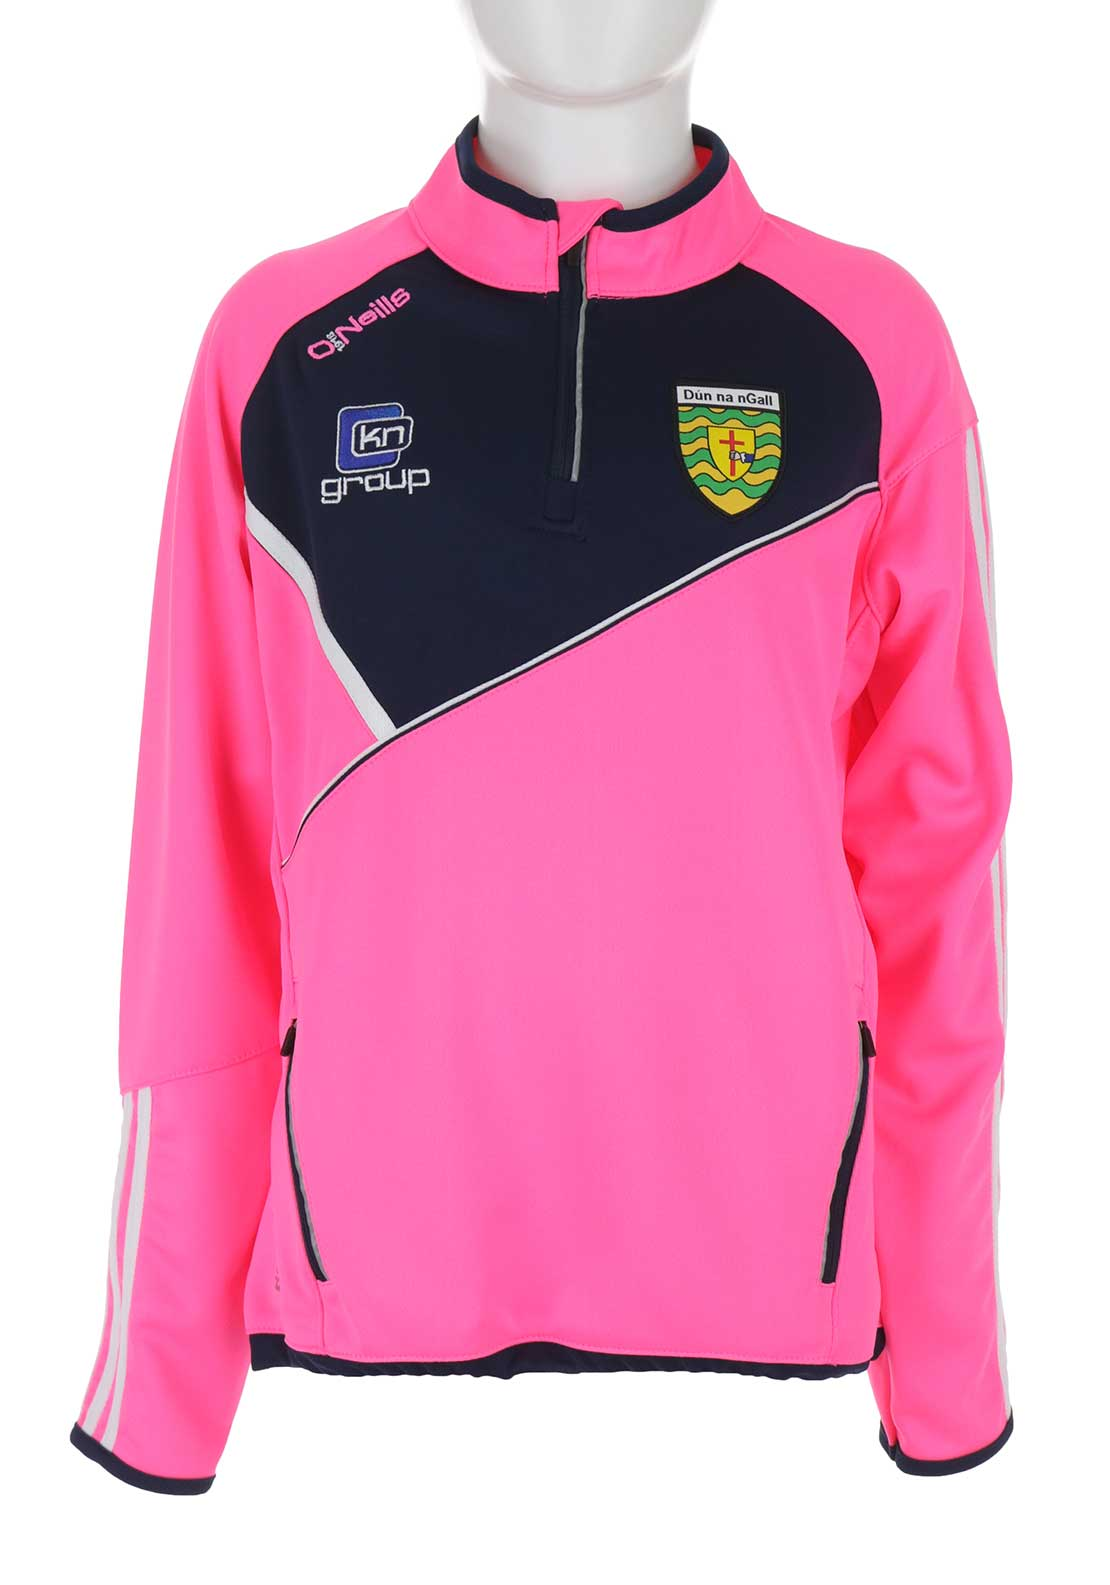 O'Neill's Donegal GAA Girls Conall Squad Top, Pink